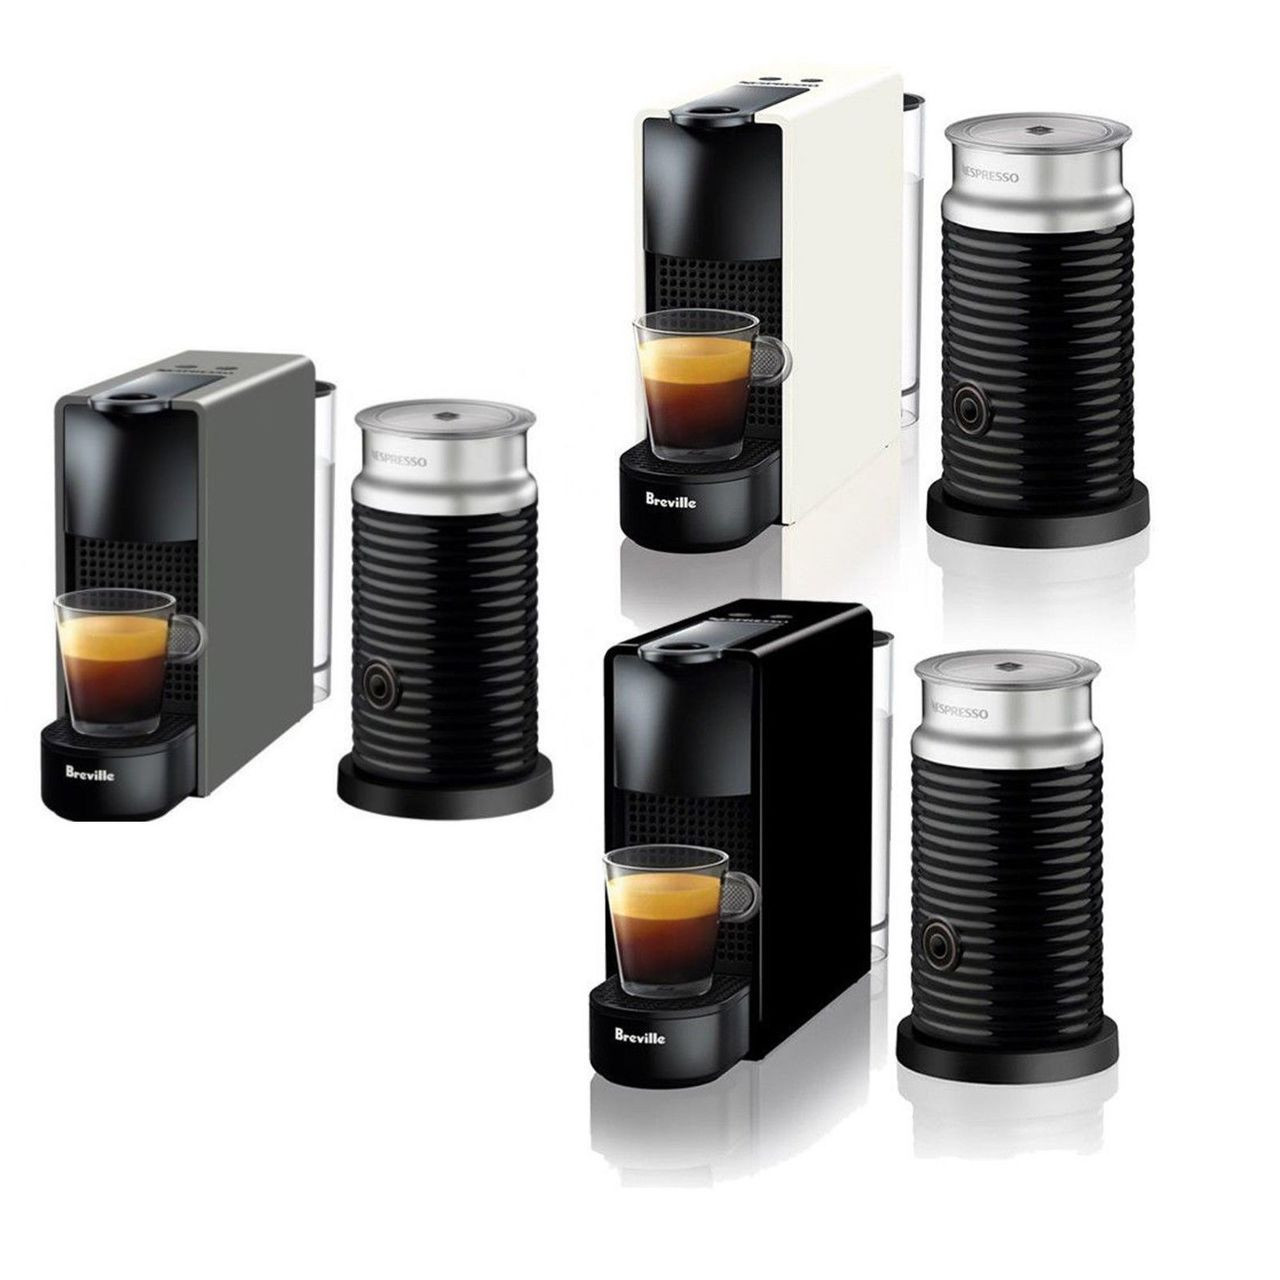 Breville BEC250 Essenza Bundle Nespresso Machine - Black - White - Grey